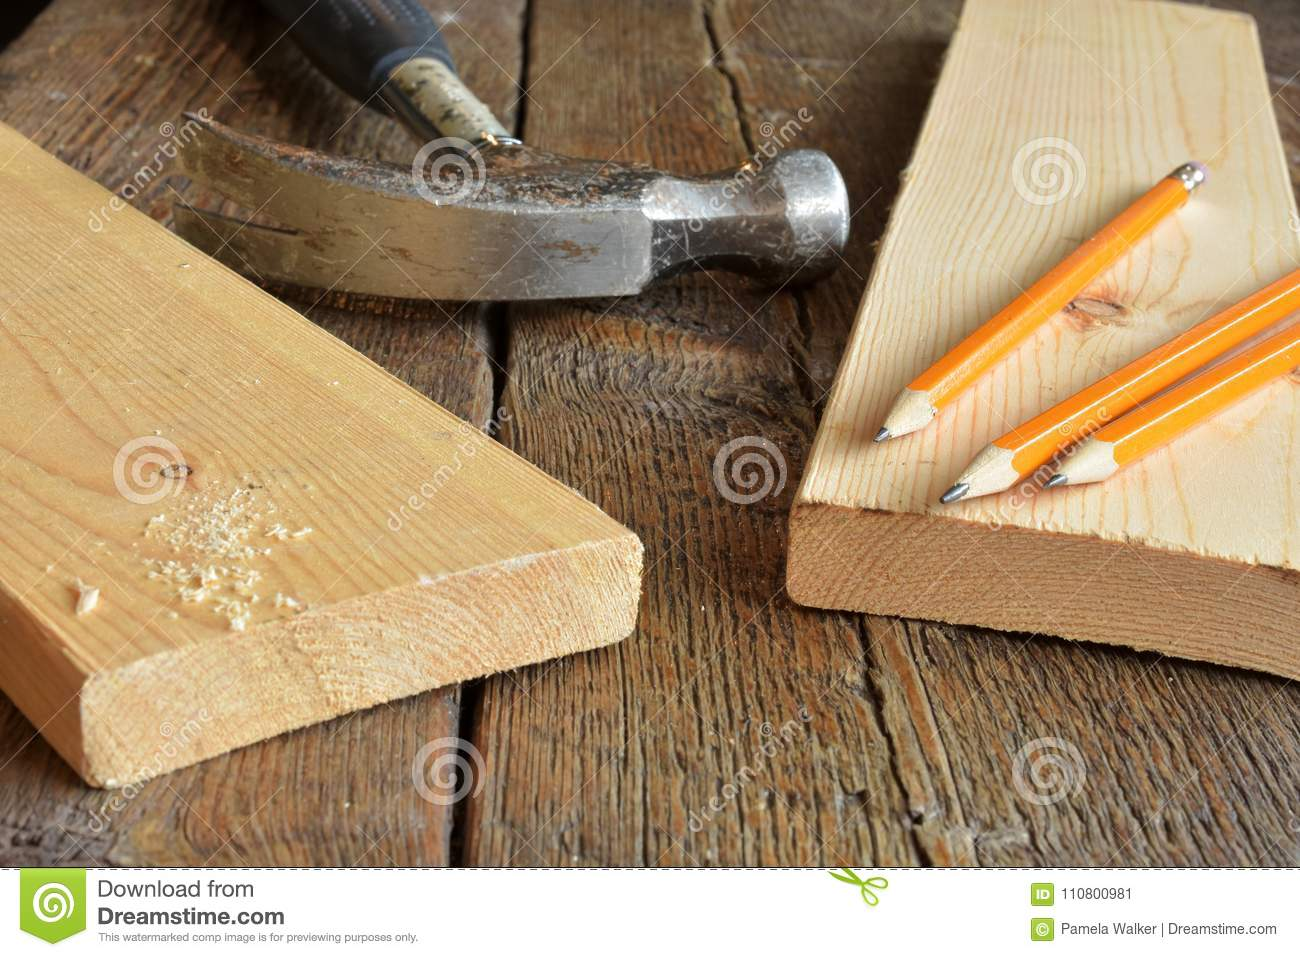 Fabulous Carpentry Work Bench Close Up Stock Image Image Of Image Machost Co Dining Chair Design Ideas Machostcouk